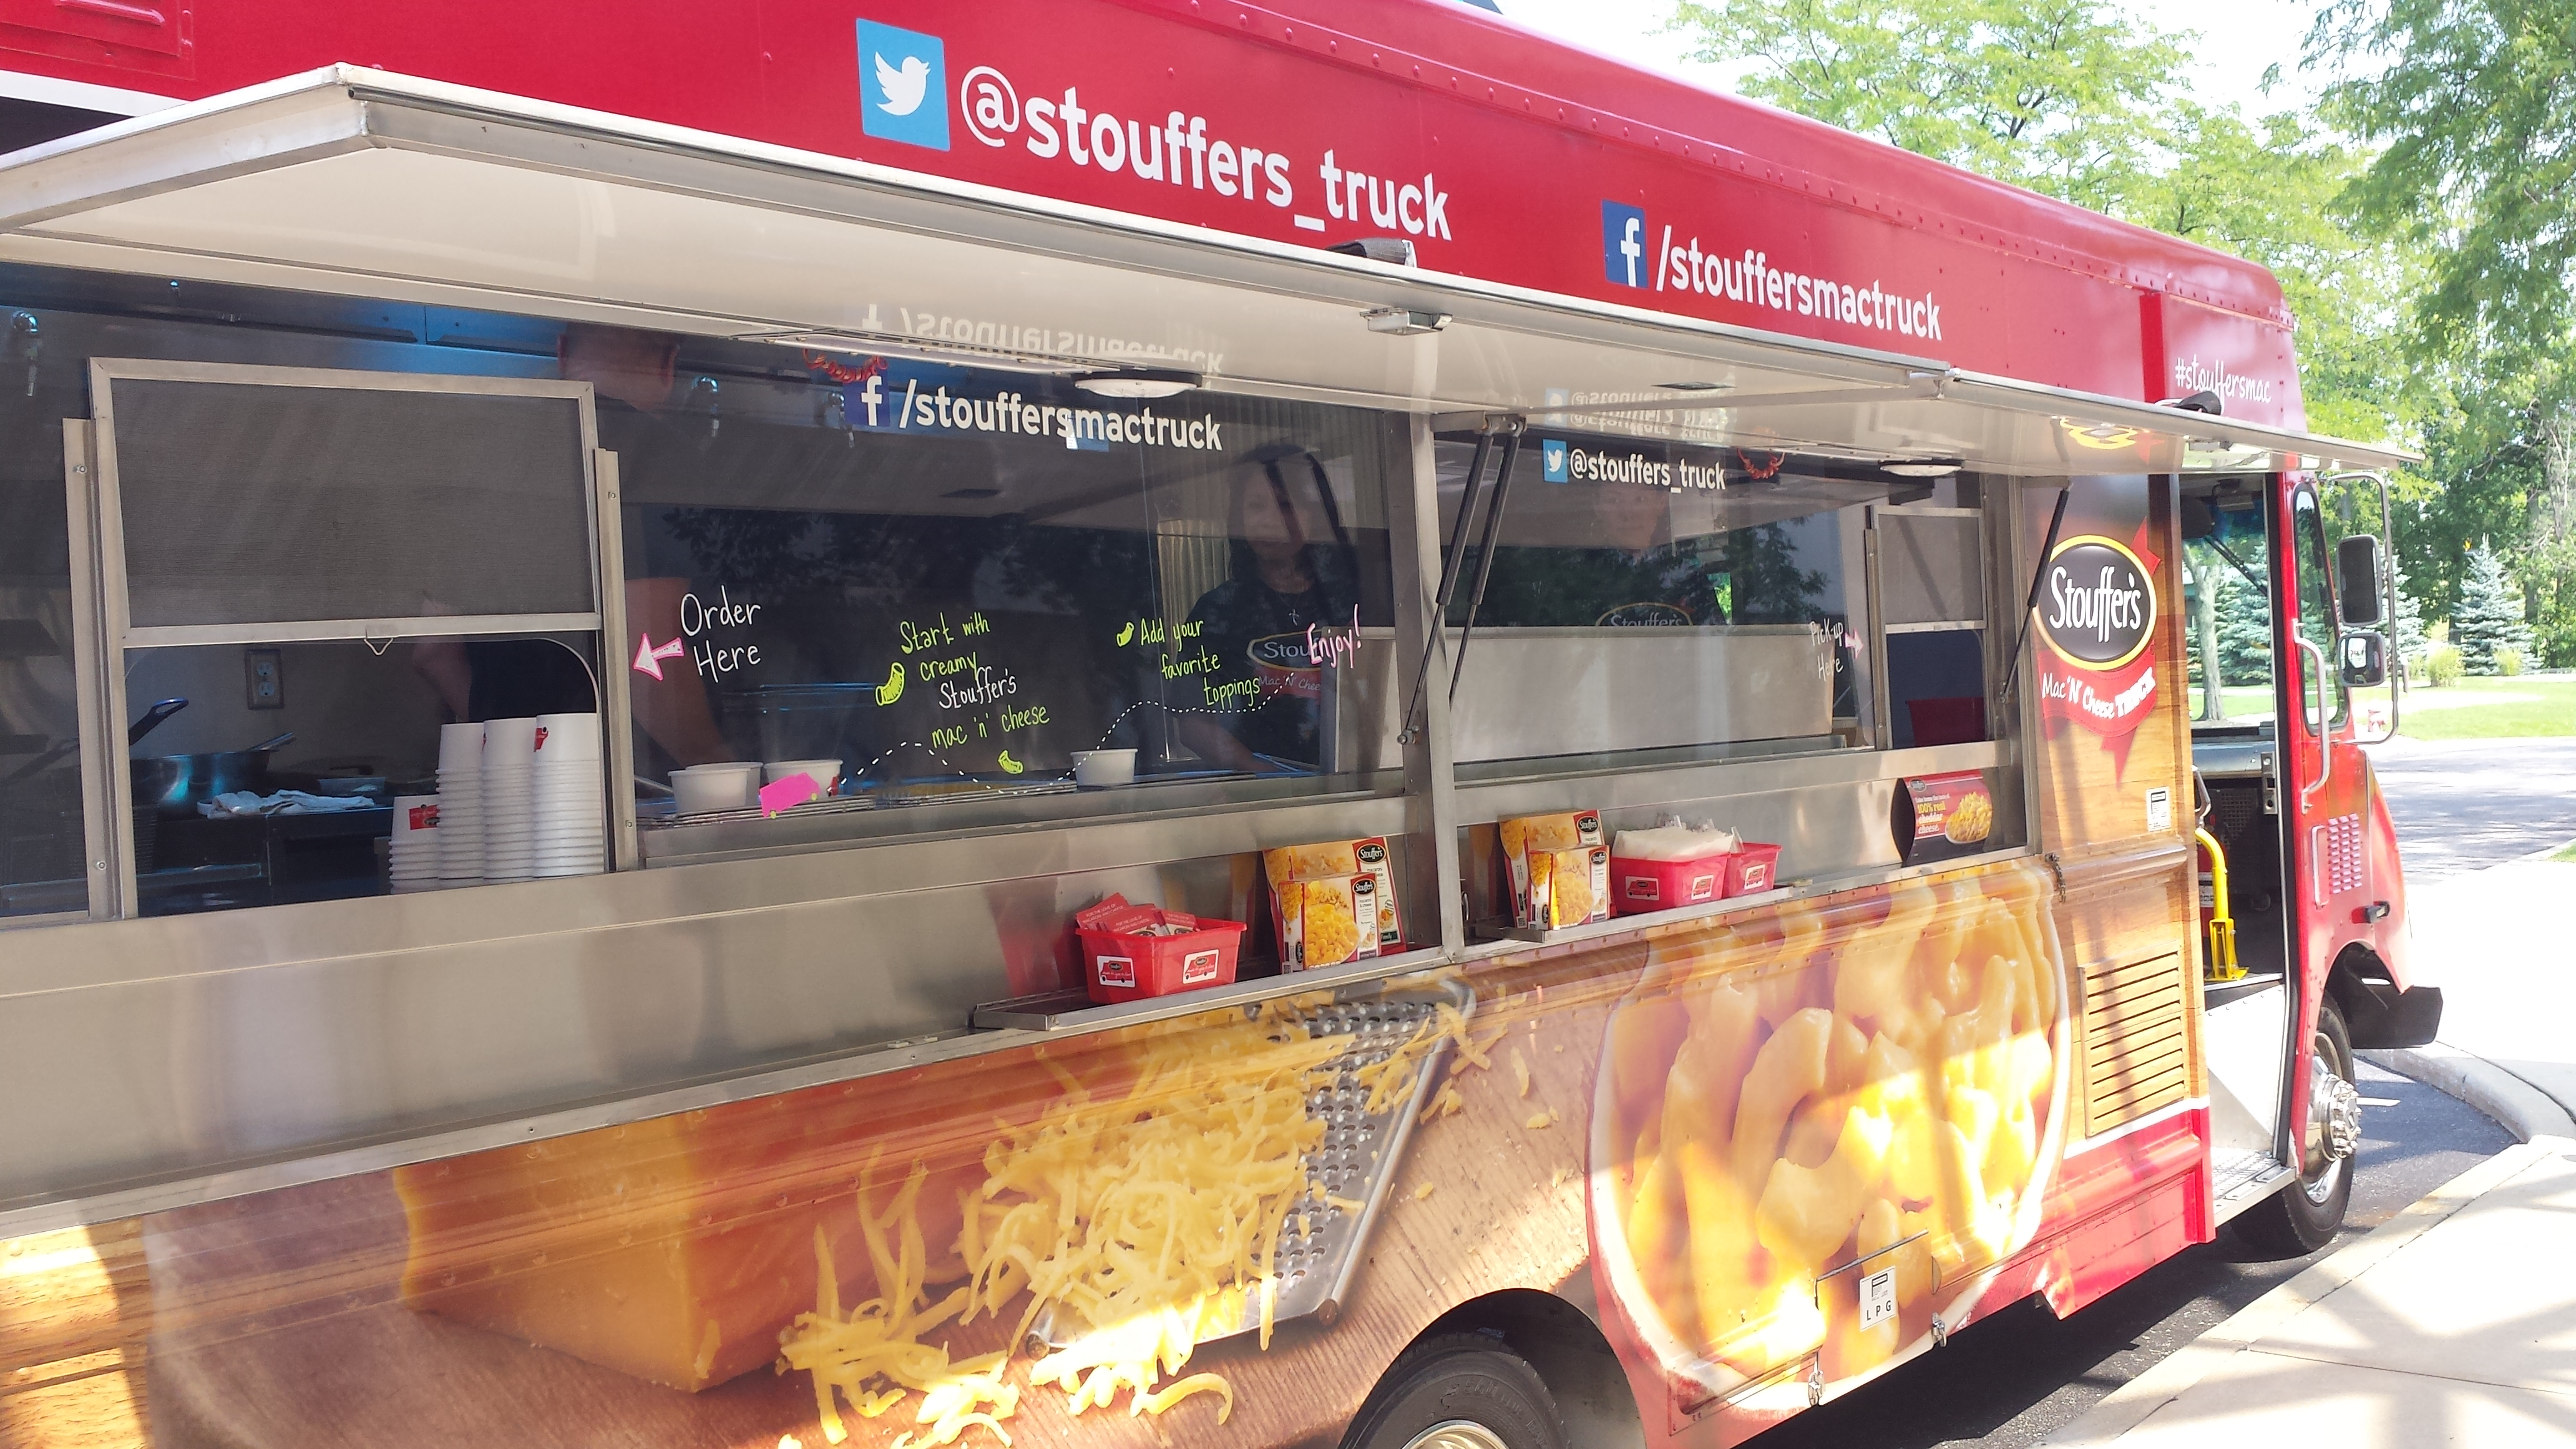 #Stouffer's Mac and Cheese #FoodTruck Brings #Wolverine Spirit to Home-Opener